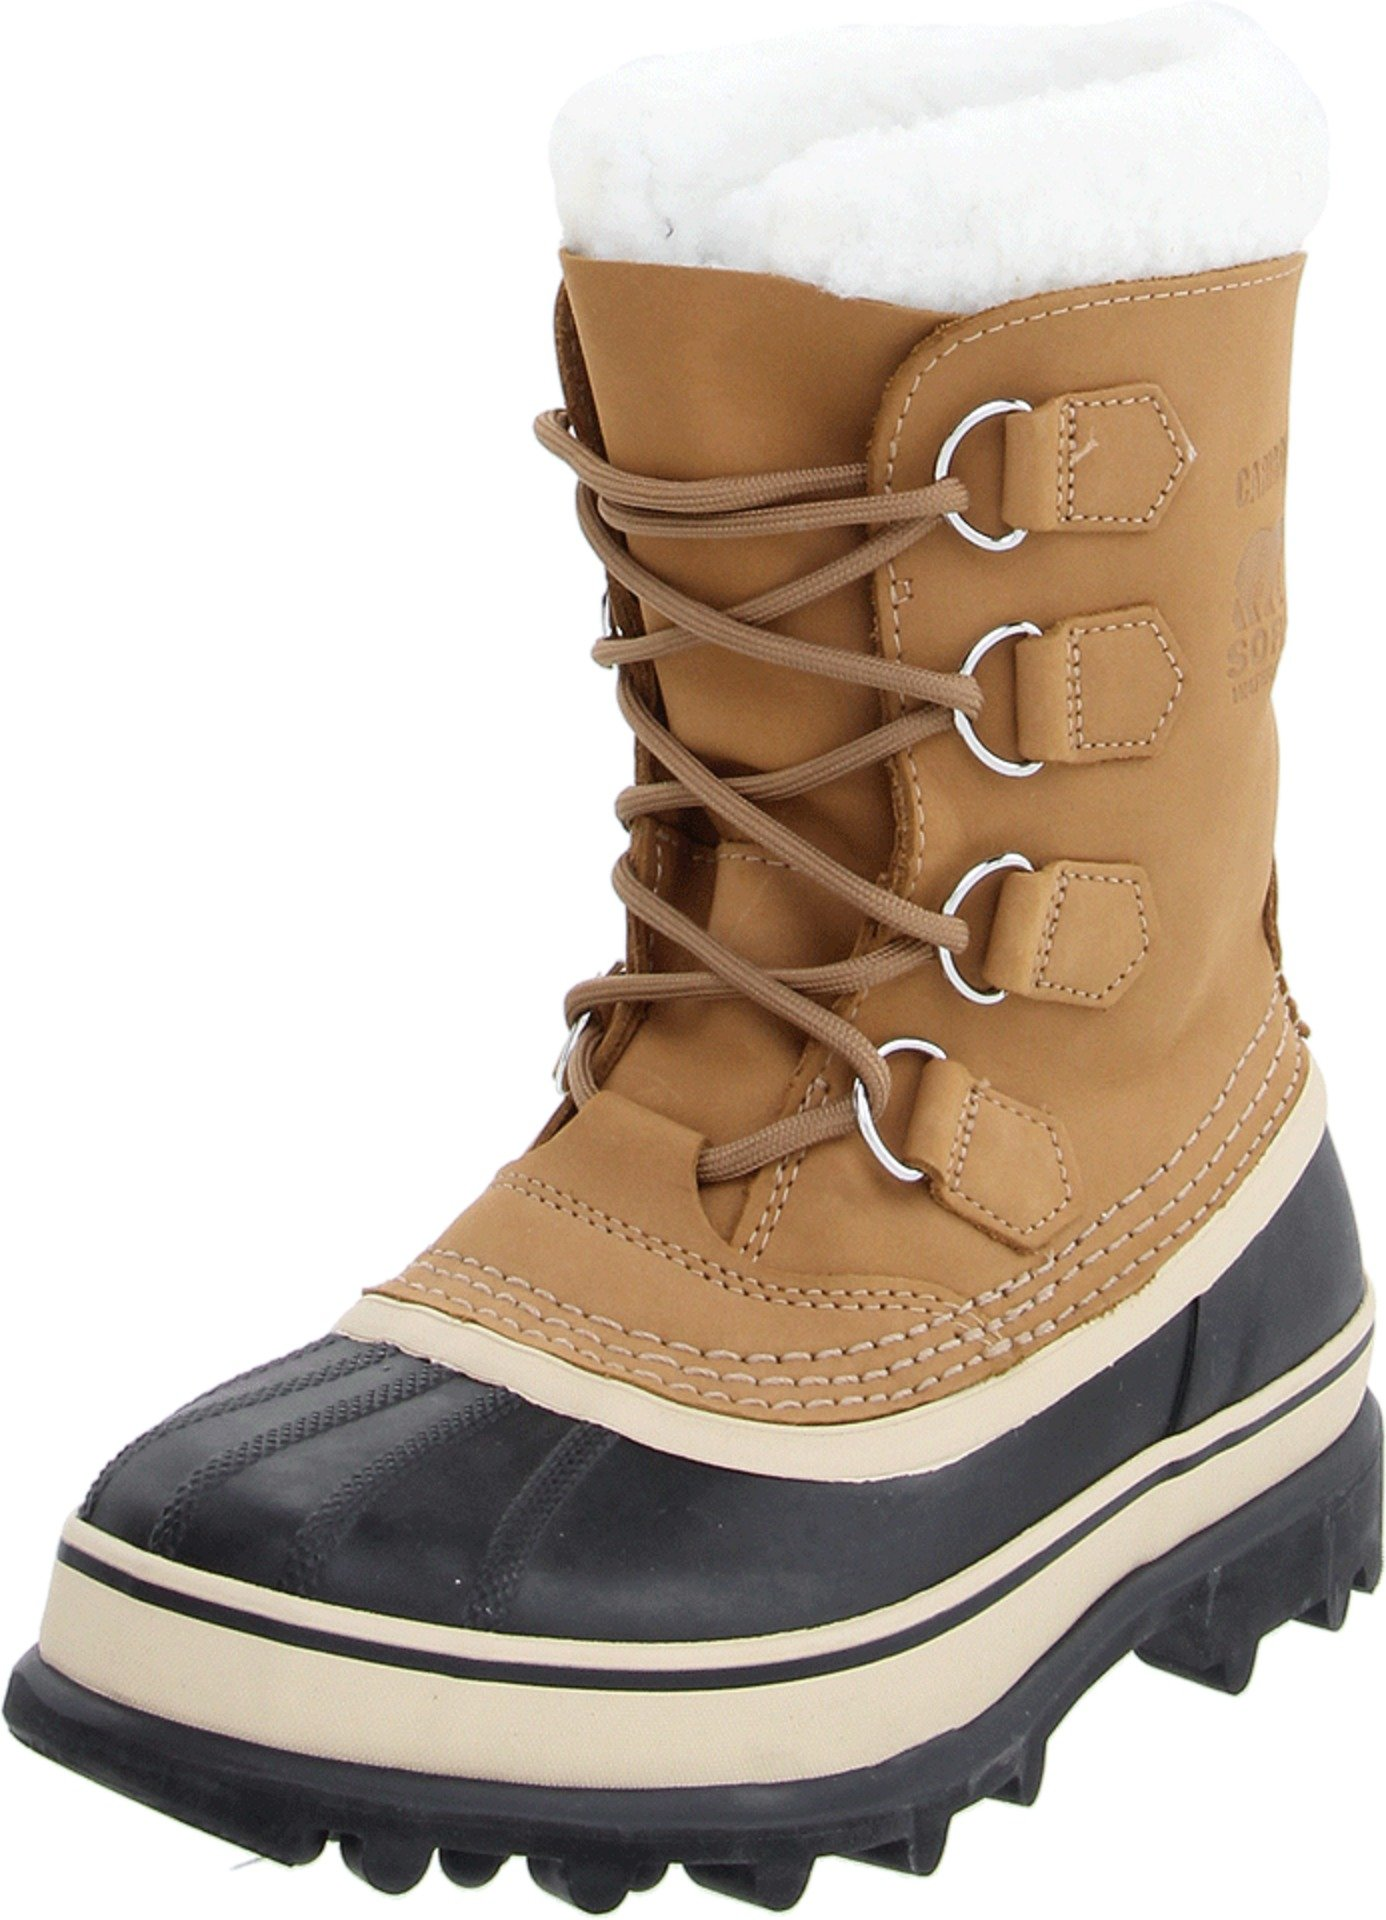 Sorel Women's Caribou NL1005 Boot,Buff,8 M by SOREL